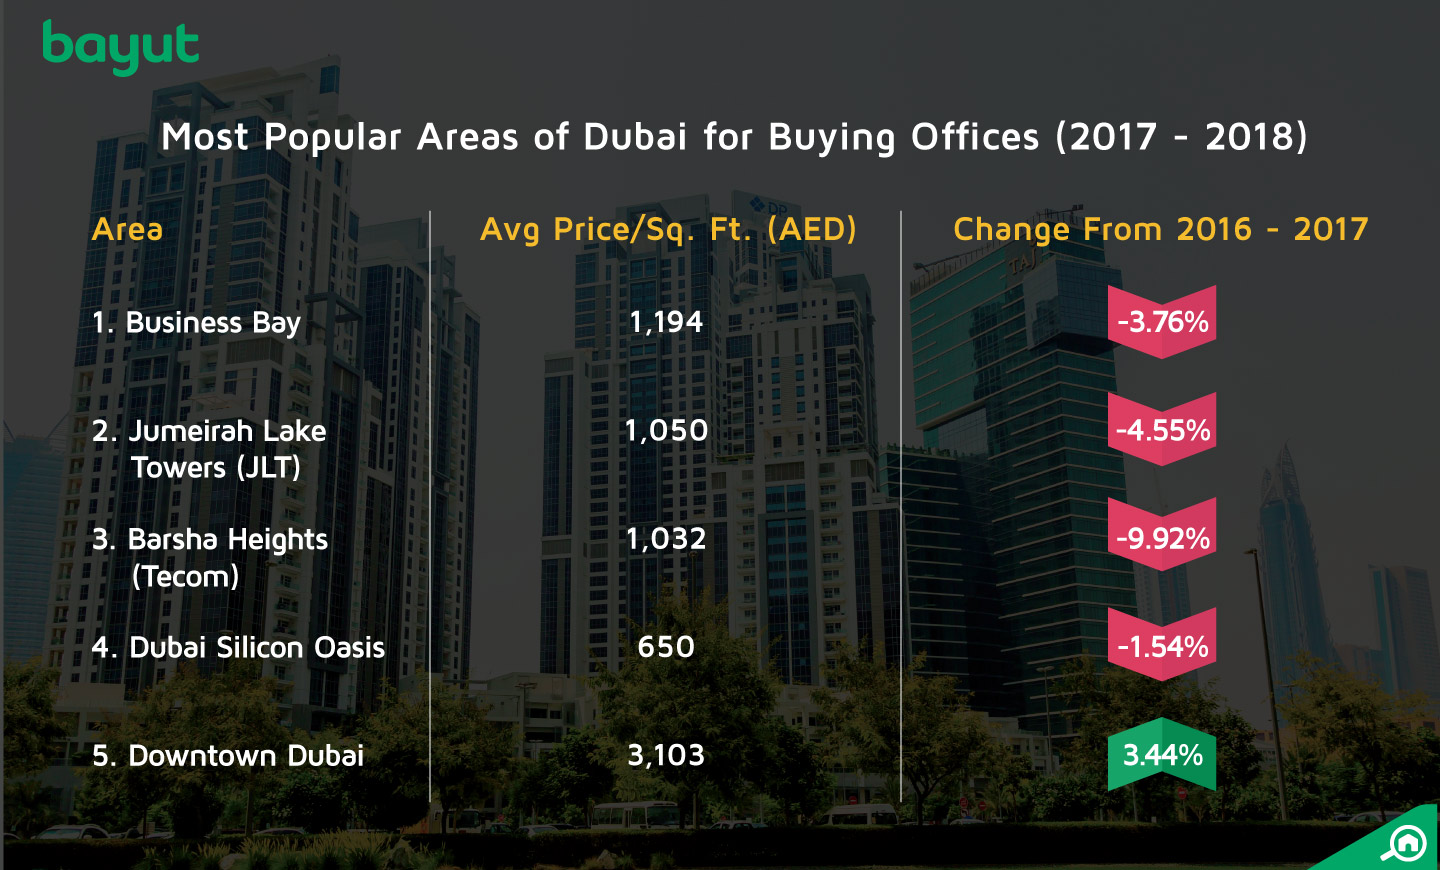 The top areas for buying offices in Dubai in 2017 - 2018